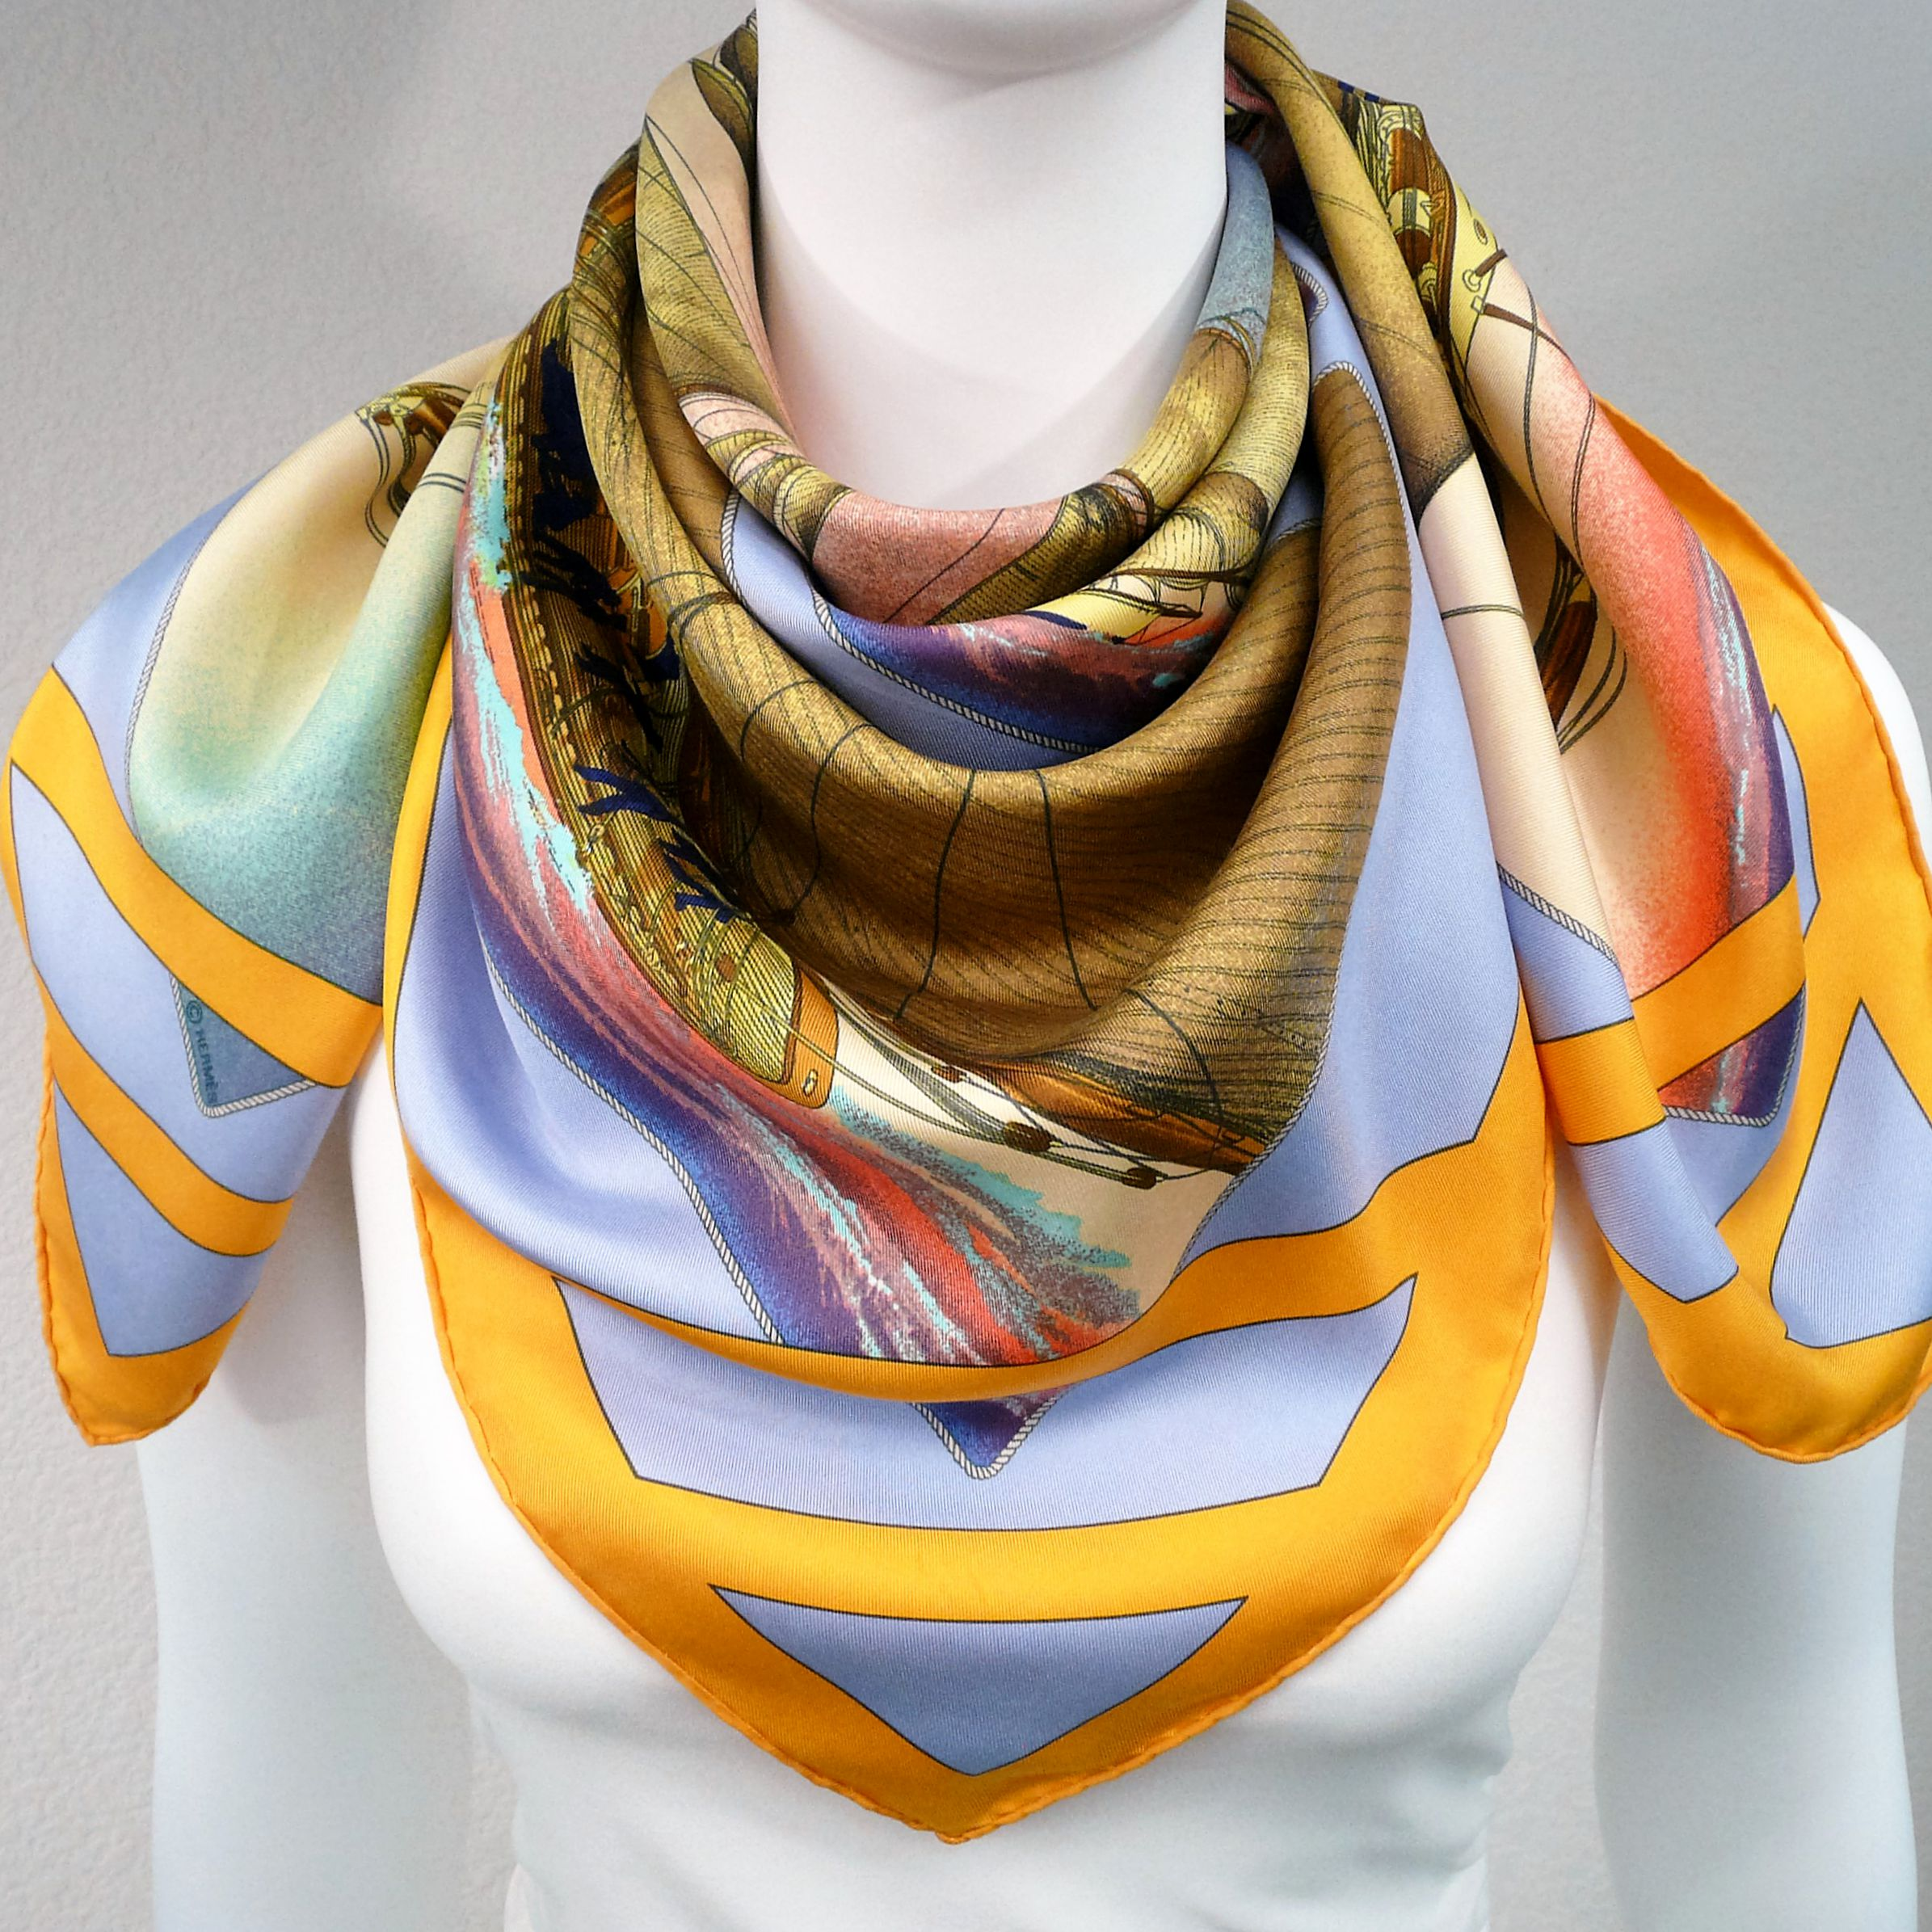 Rafales HERMES Paris Scarf with Sail Boats